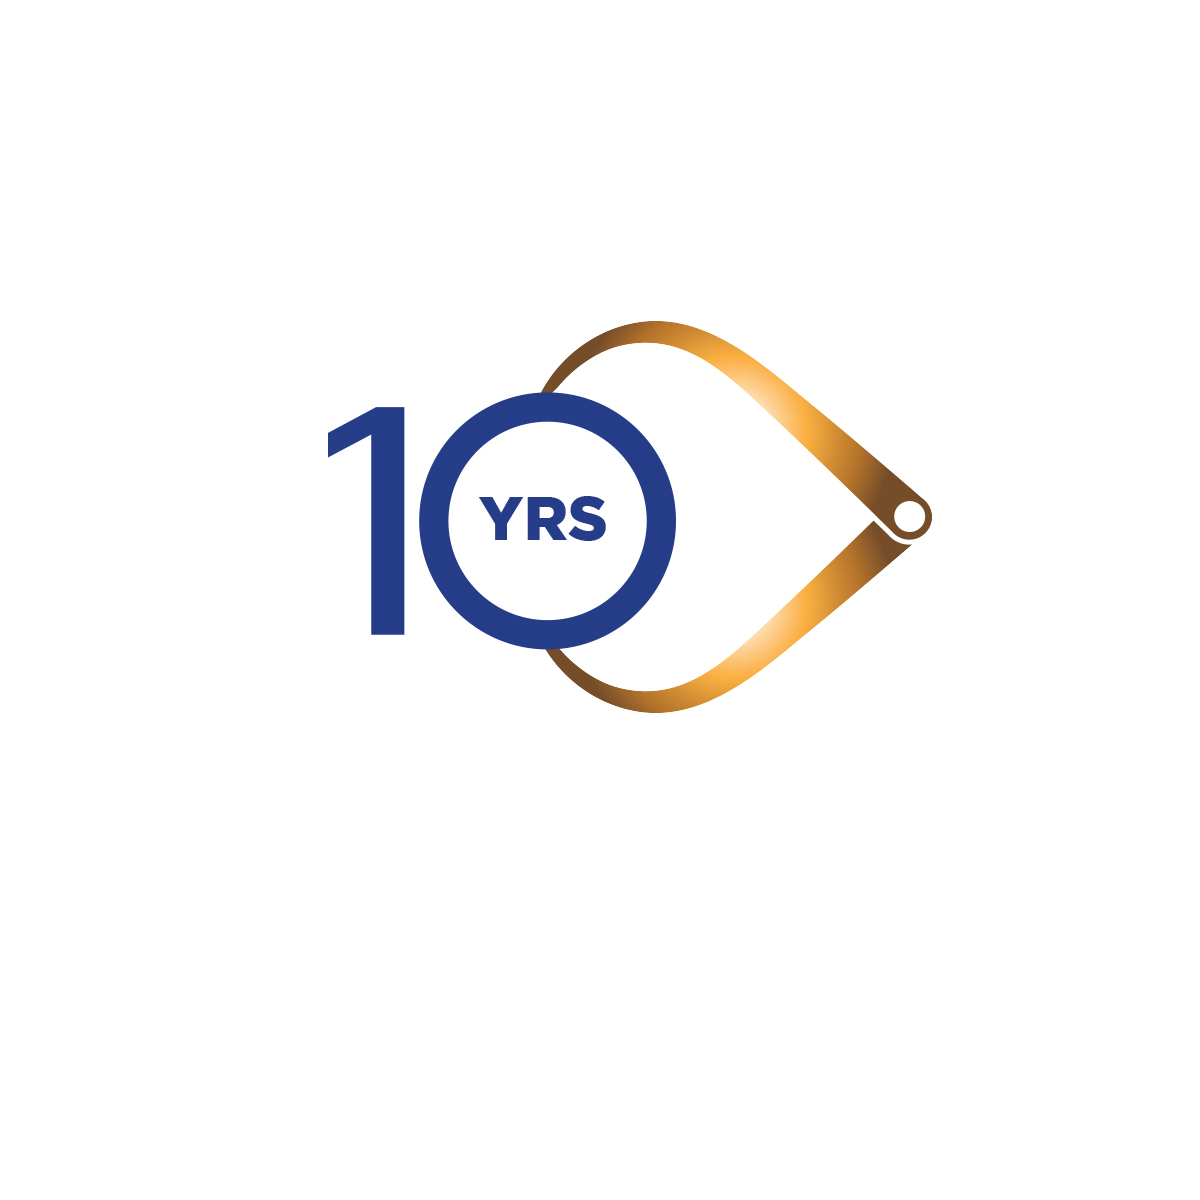 10 Years in Manufacturing logo design by logo designer jordan fretz design for your inspiration and for the worlds largest logo competition